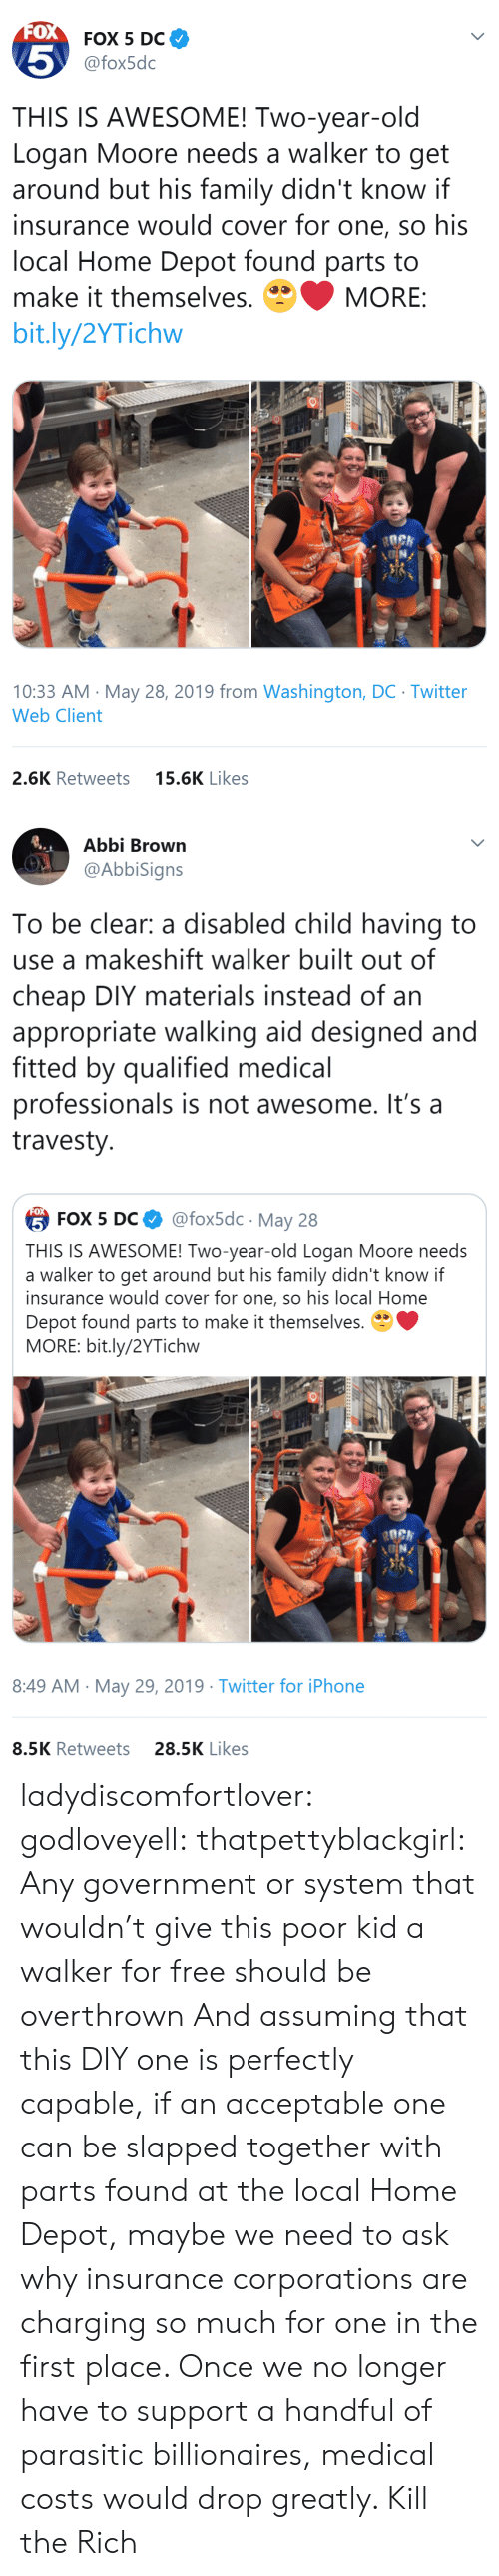 Qualified: FOX  FOX 5 DC  5  @fox5dc  THIS IS AWESOME! Two-year-old  Logan Moore needs a walker to get  around but his family didn't know if  insurance would cover for one, so his  local Home Depot found parts to  make it themselves.  MORE:  bit.ly/2YTichw  10:33 AM May 28, 2019 from Washington, DC Twitter  Web Client  15.6K Likes  2.6K Retweets   Abbi Brown  @AbbiSigns  To be clear: a disabled child having to  use a makeshift walker built out of  cheap DIY materials instead of an  appropriate walking aid designed and  fitted by qualified medical  professionals is not awesome. It's a  travesty  FOX  @fox5dc May 28  5 FOX 5 DС  THIS IS AWESOME! Two-year-old Logan Moore needs  a walker to get around but his family didn't know if  insurance would cover for one, so his local Home  Depot found parts to make it themselves.  MORE: bit.ly/2YTichw  8:49 AM May 29, 2019 Twitter for iPhone  28.5K Likes  8.5K Retweets ladydiscomfortlover: godloveyell:  thatpettyblackgirl:  Any government or system that wouldn't give this poor kid a walker for free should be overthrown   And assuming that this DIY one is perfectly capable, if an acceptable one can be slapped together with parts found at the local Home Depot, maybe we need to ask why insurance corporations are charging so much for one in the first place.  Once we no longer have to support a handful of parasitic billionaires, medical costs would drop greatly.    Kill the Rich